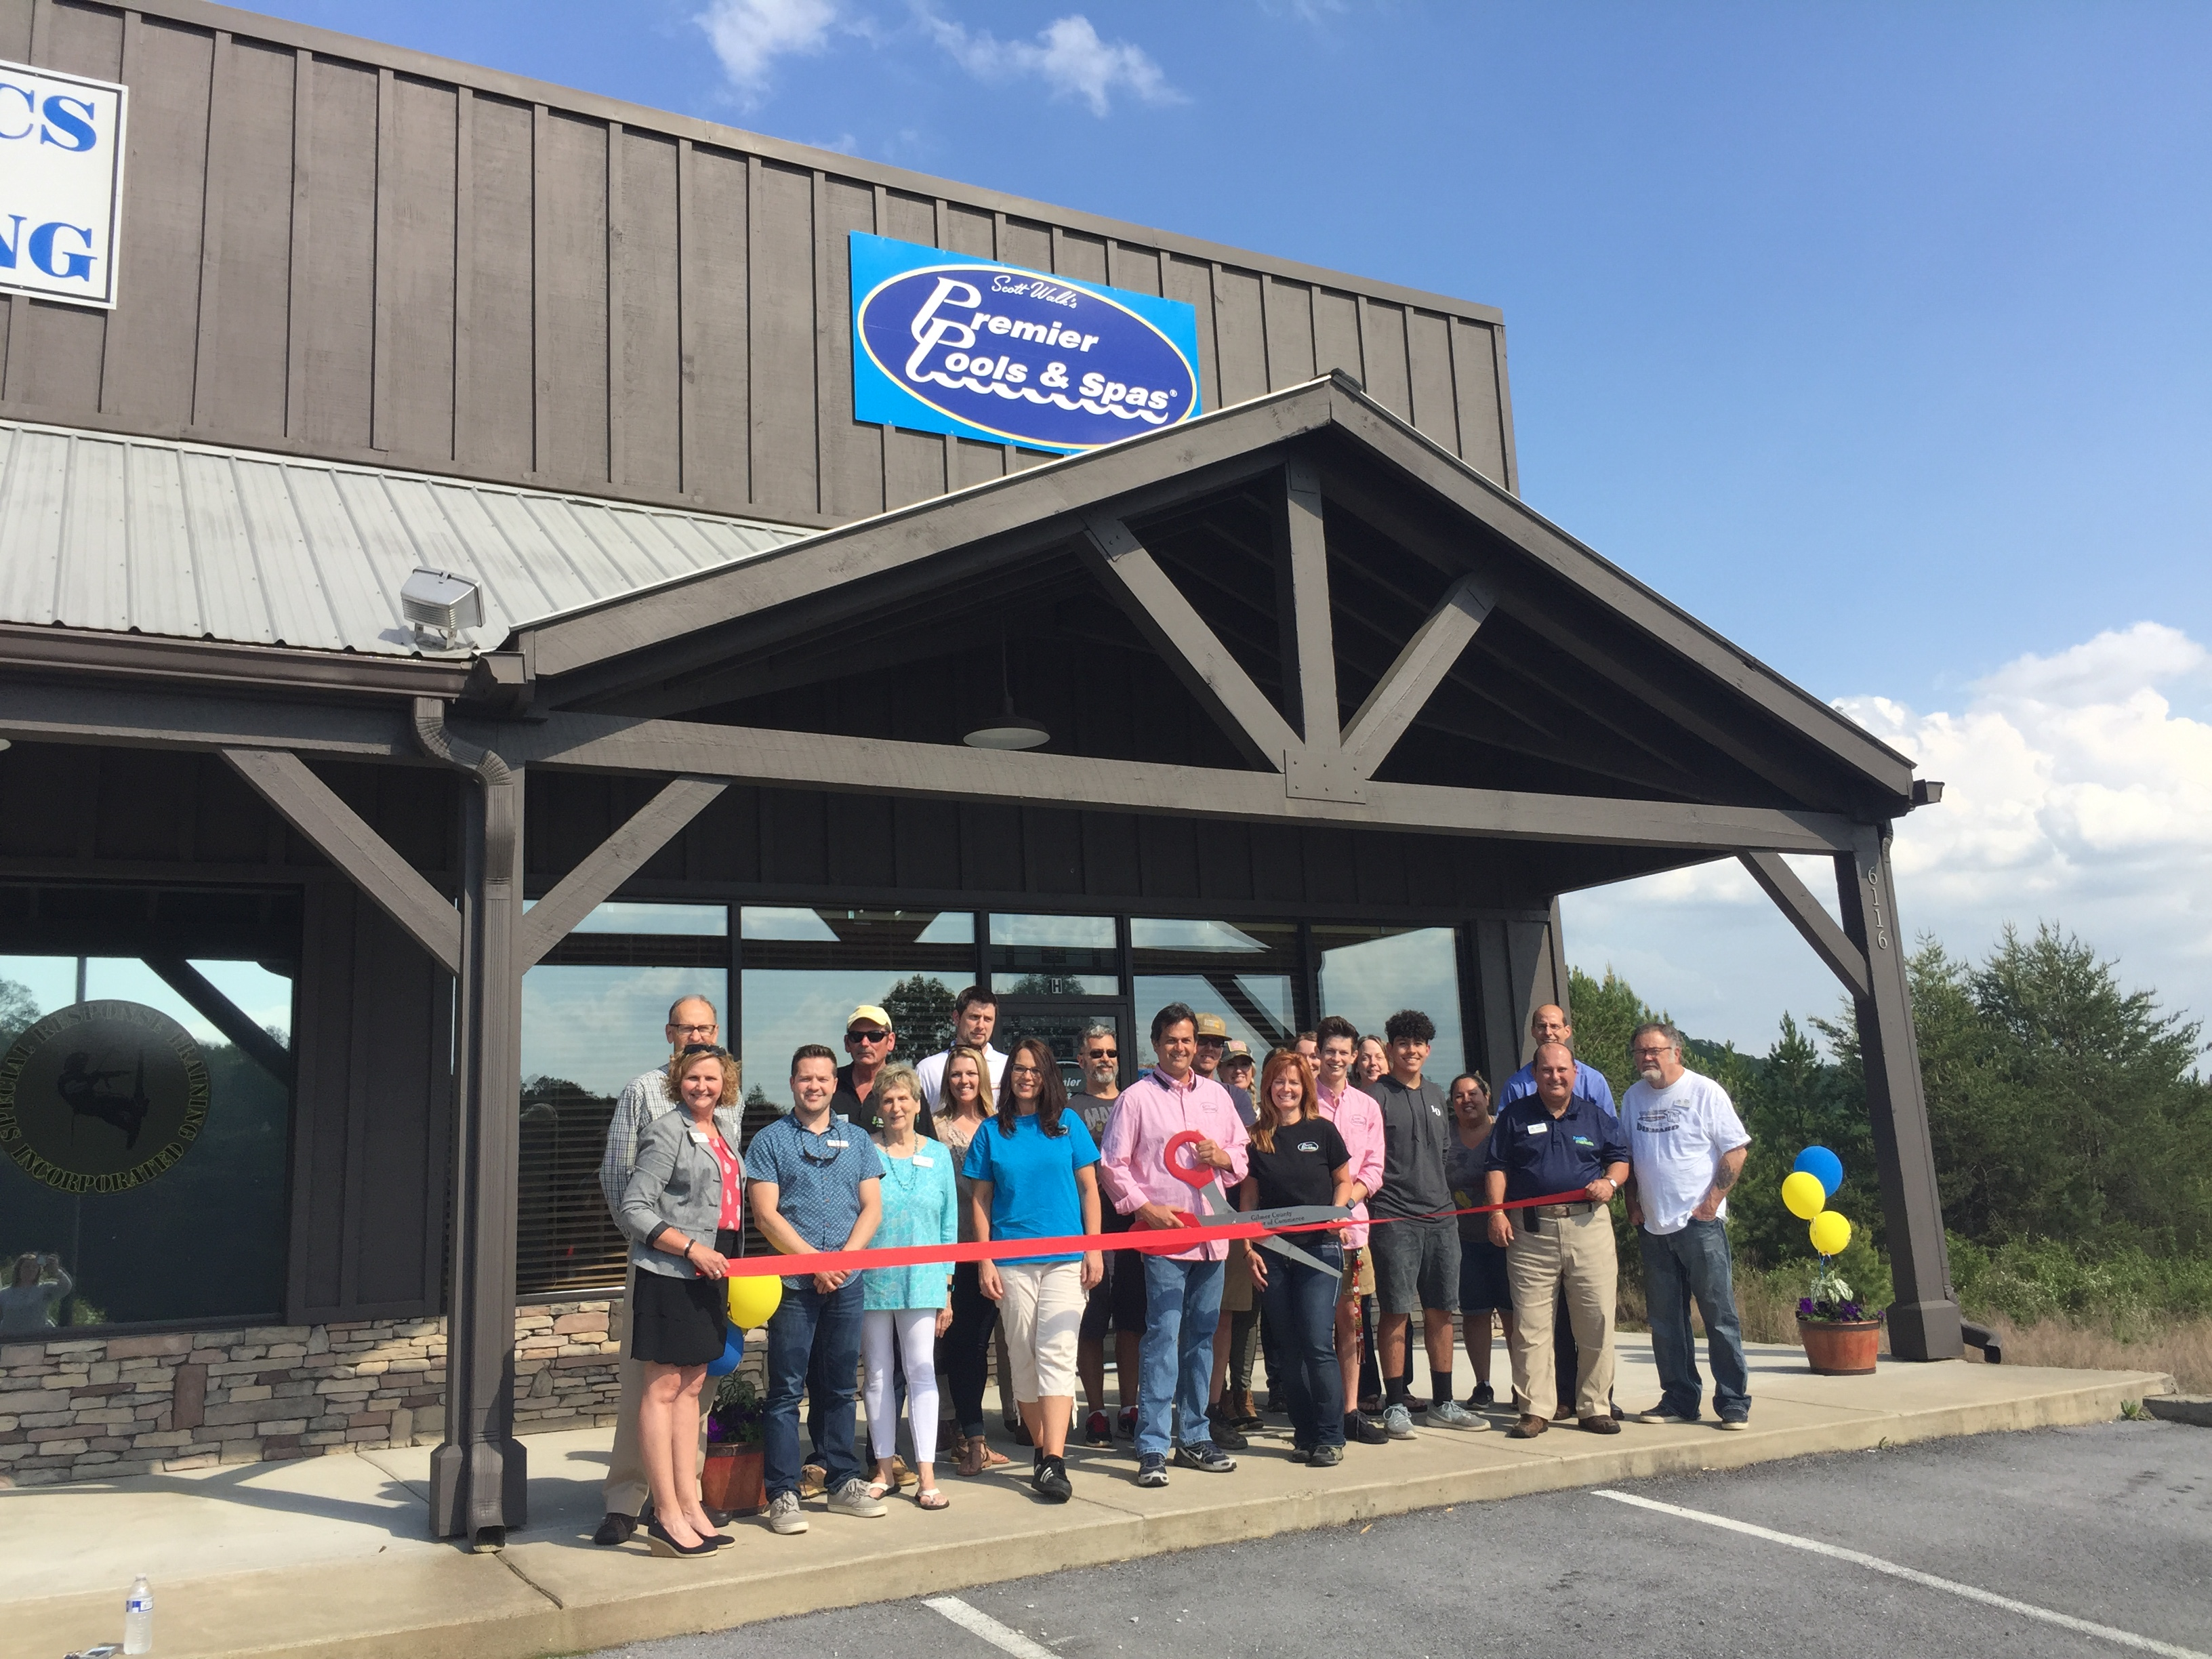 Photo-Apr-20-4-41-59-PM Ribbon Cutting for Premier Pools & Spas - Gilmer County Chamber of Commerce